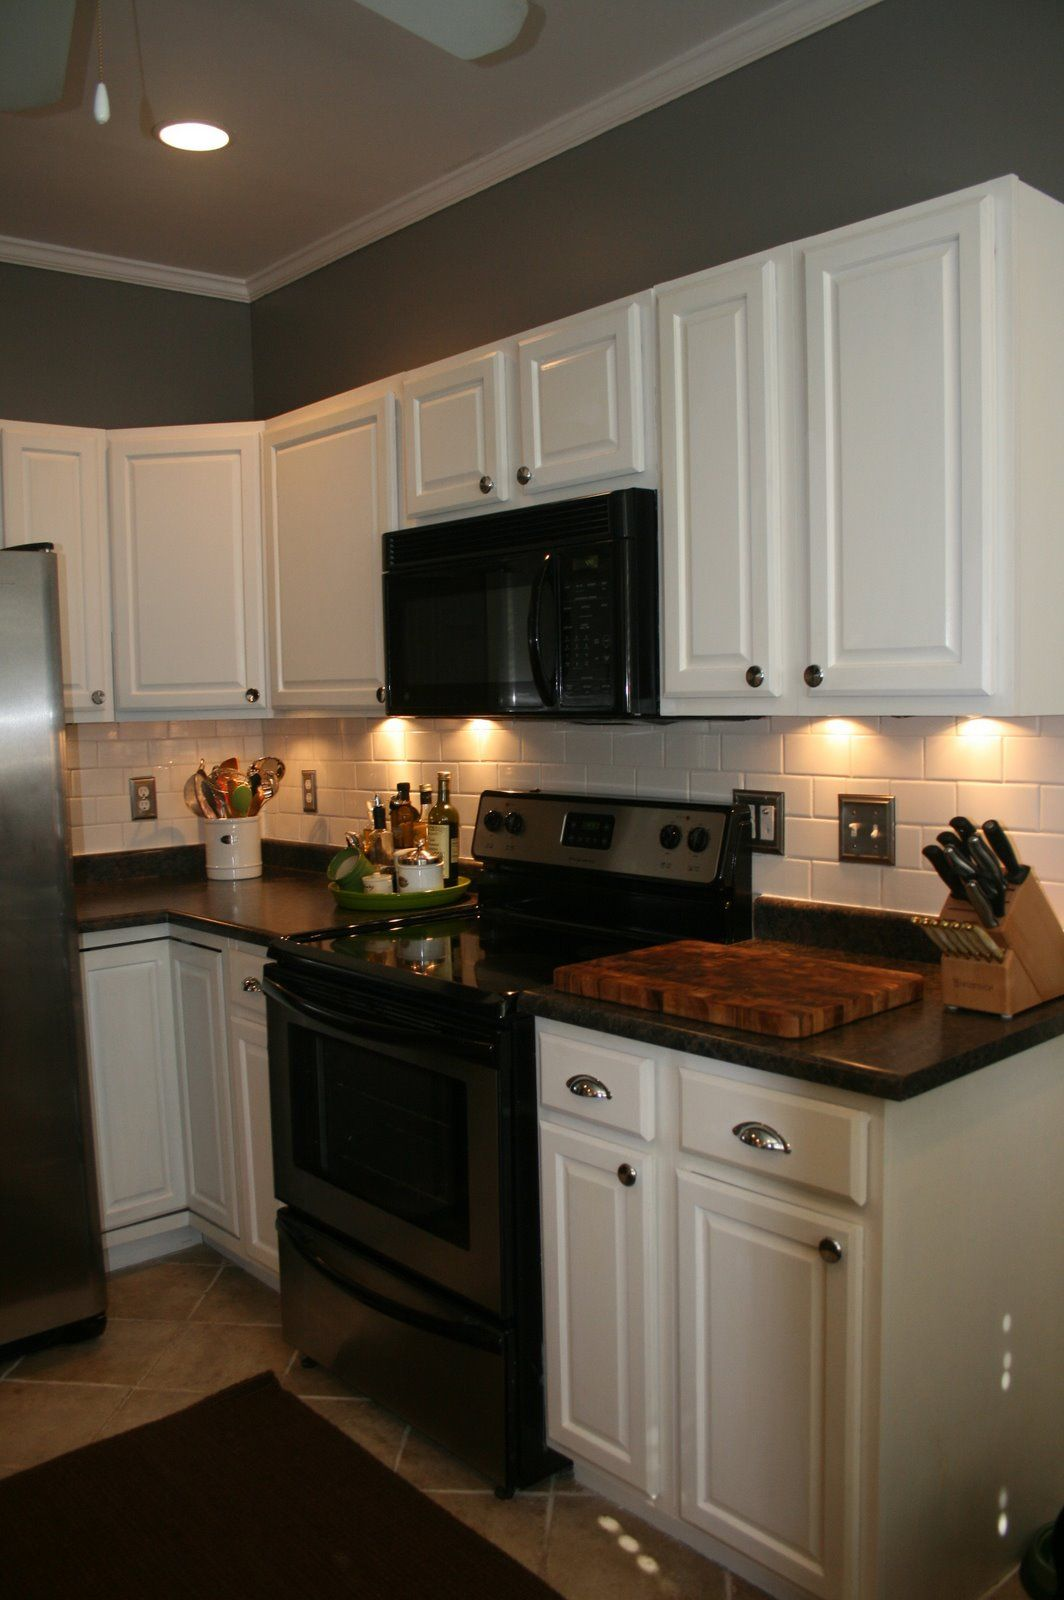 Kitchen Cabinets Black Appliances paint oak cabinets white. i don't usually like white cabinets but